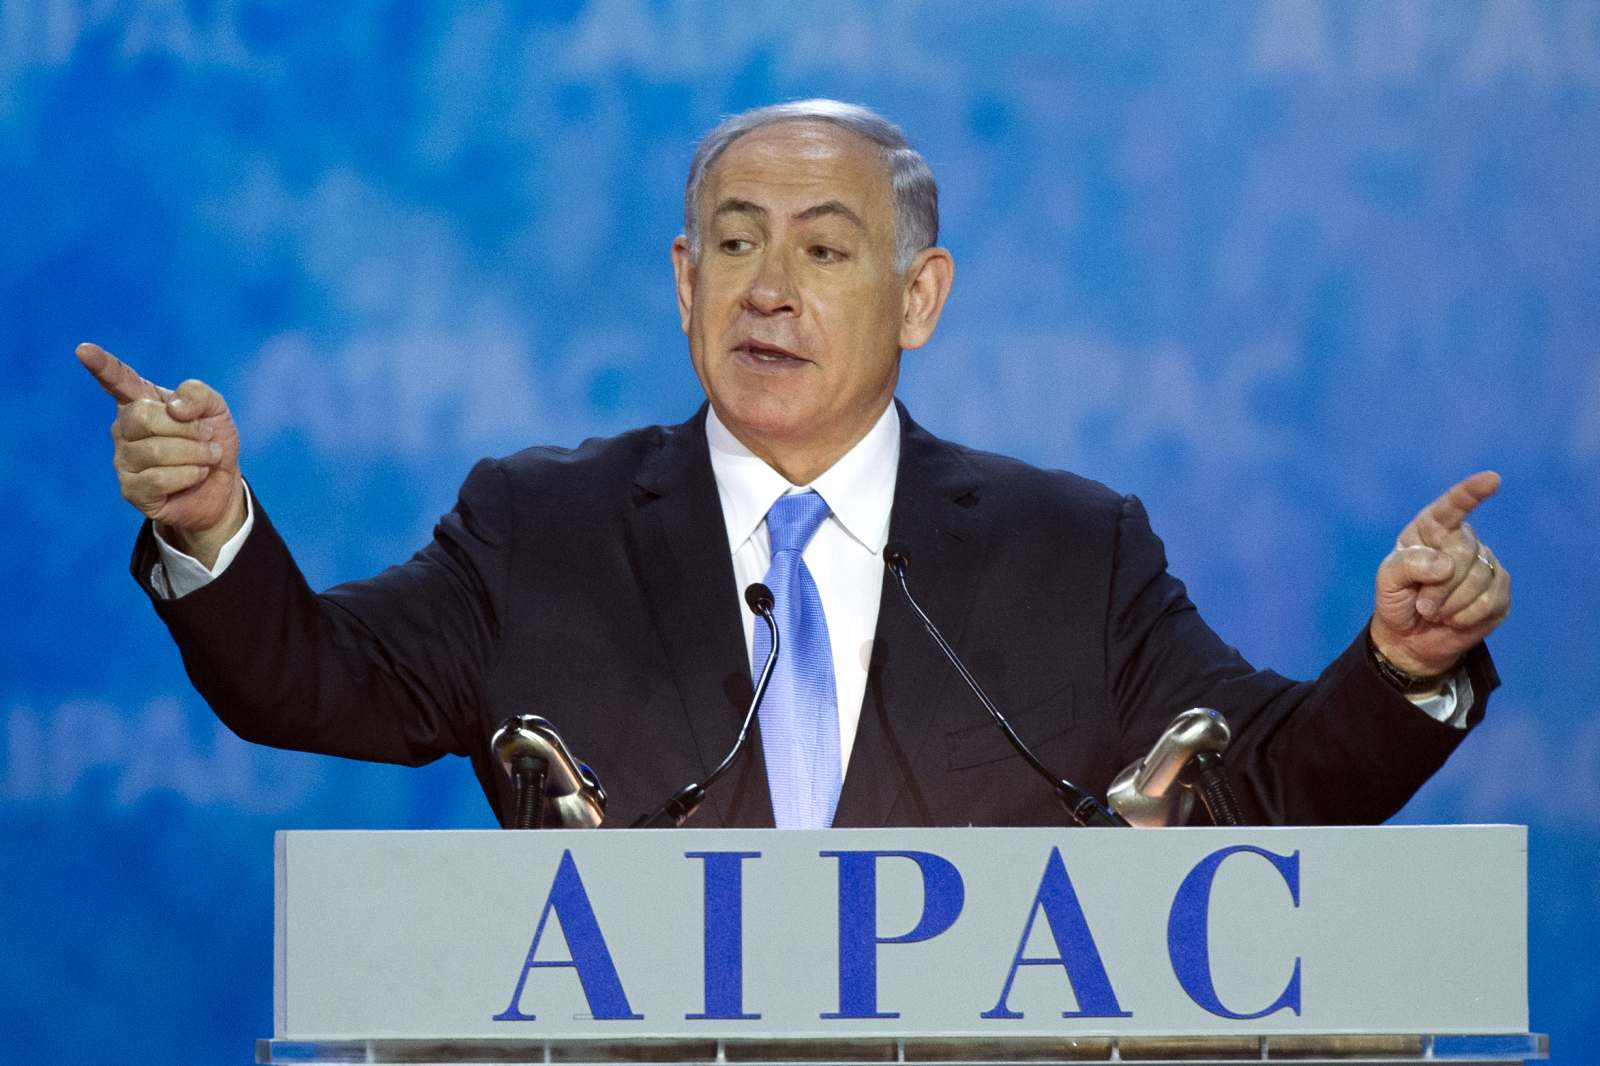 Israeli Prime Minister Benjamin Netanyahu gestures while speaking at the 2015 American Israel Public Affairs Committee Policy Conference in Washington, March 2, 2015. (AP Photo/Cliff Owen)